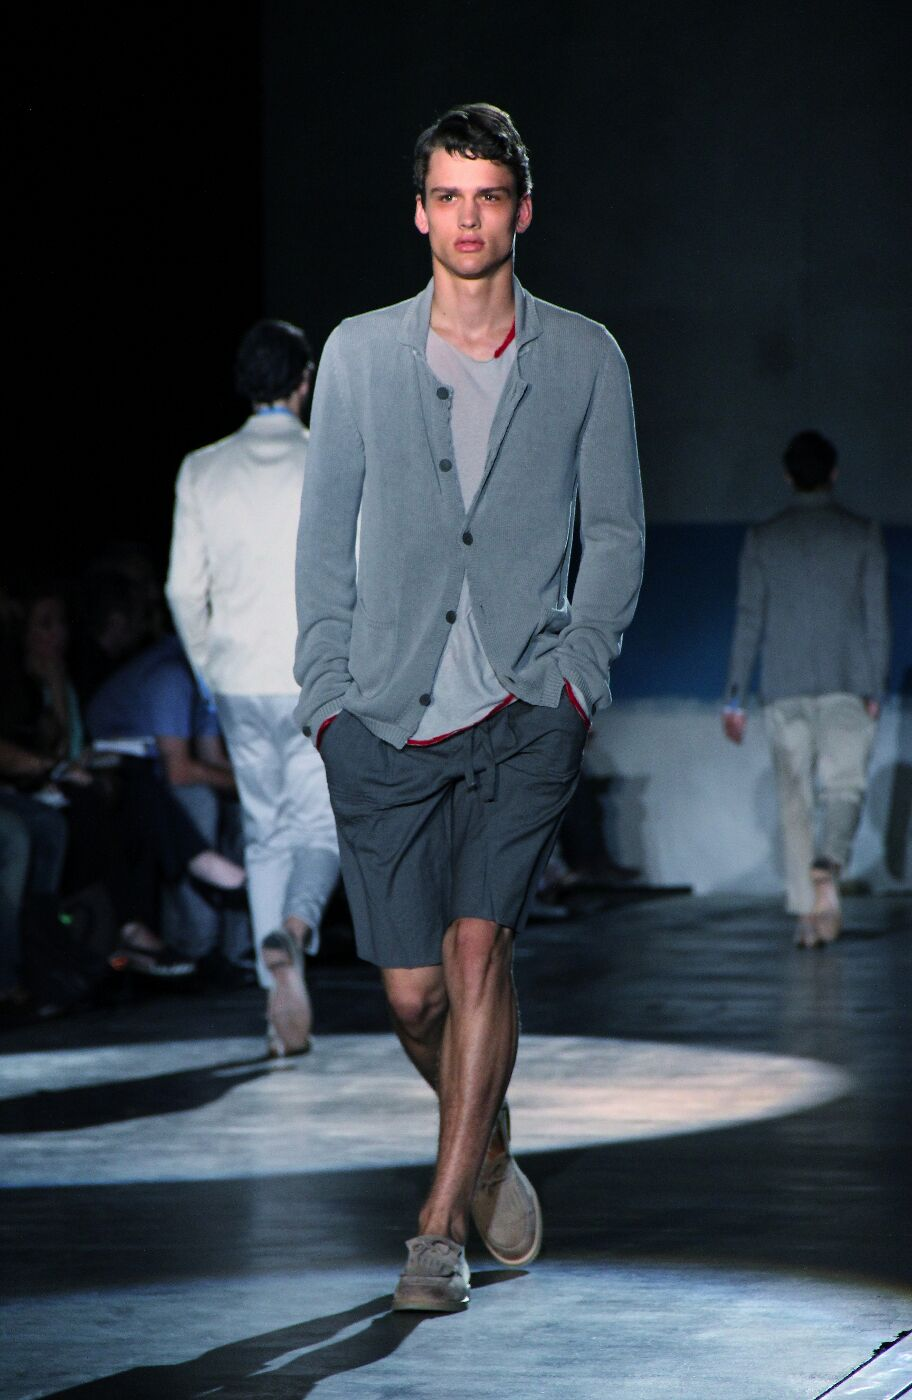 spring-summer-iceberg-2012-men-collection-milano-fashion-week-2012-iceberg-fashion-show-catwalk